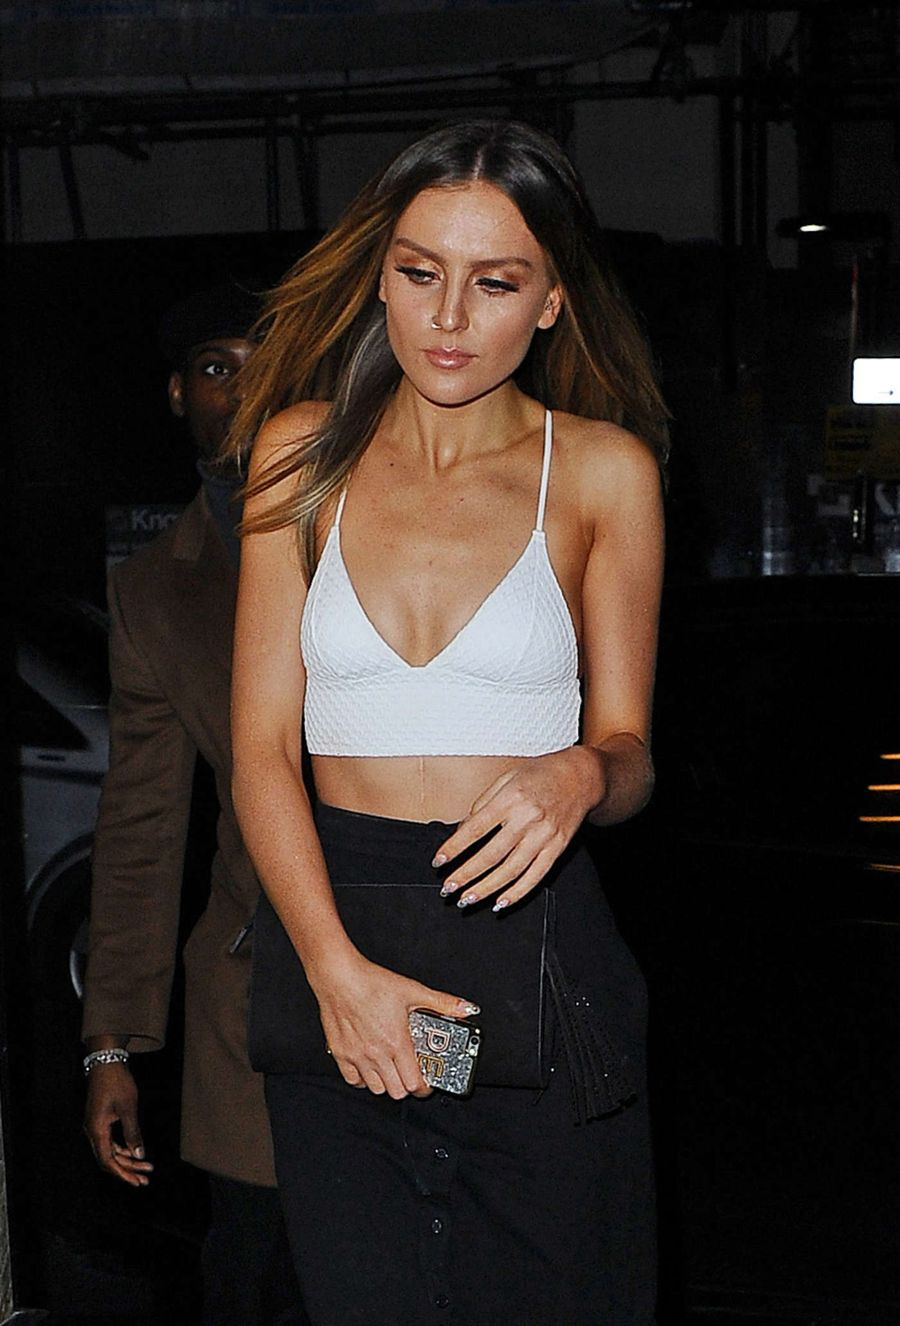 Perrie Edwards at Fish Restaurant in London